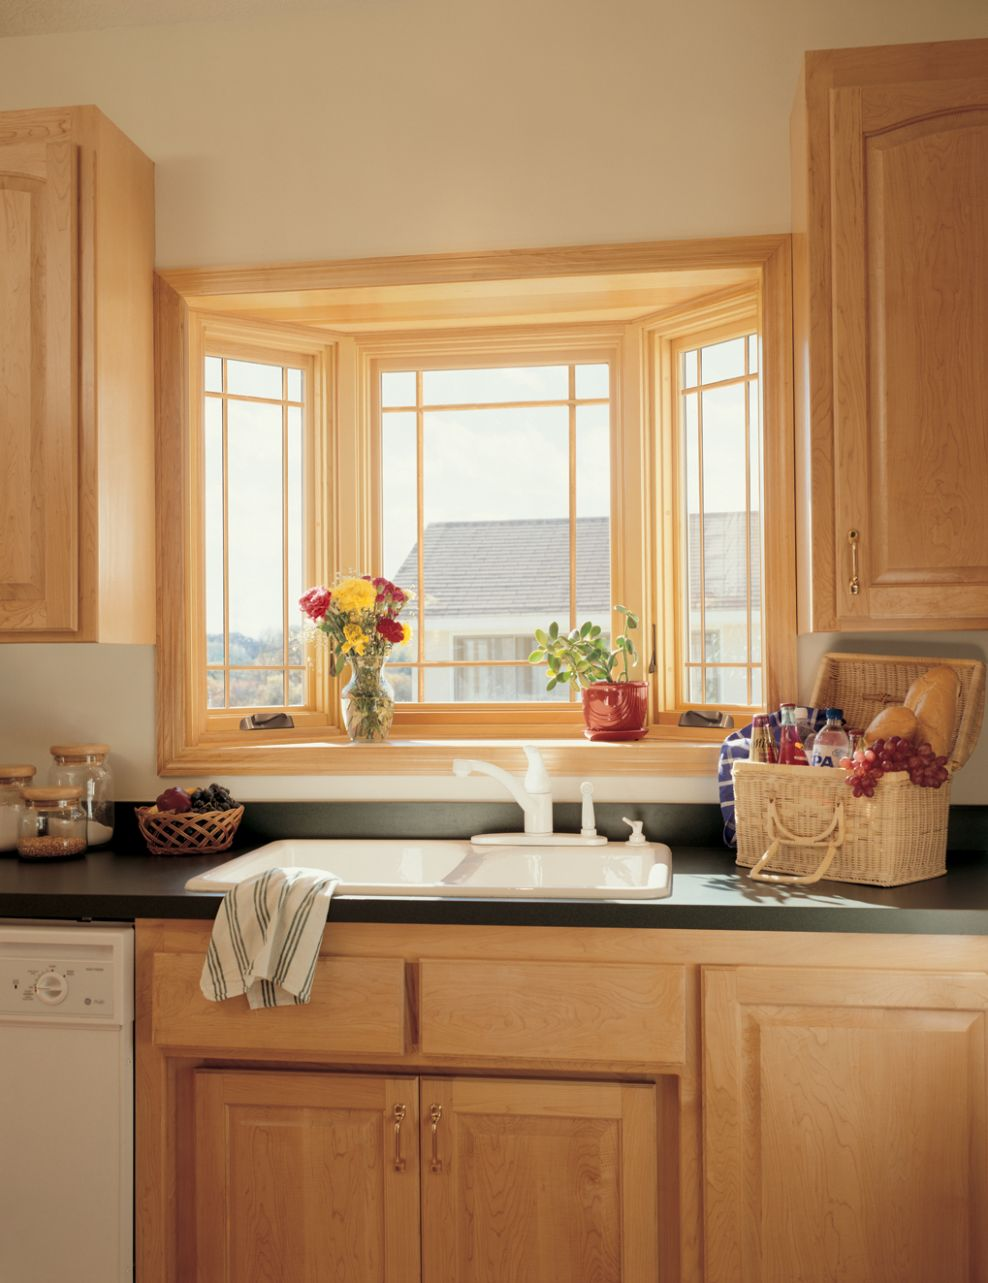 Small Bay Windows For Kitchen | MyCoffeepot